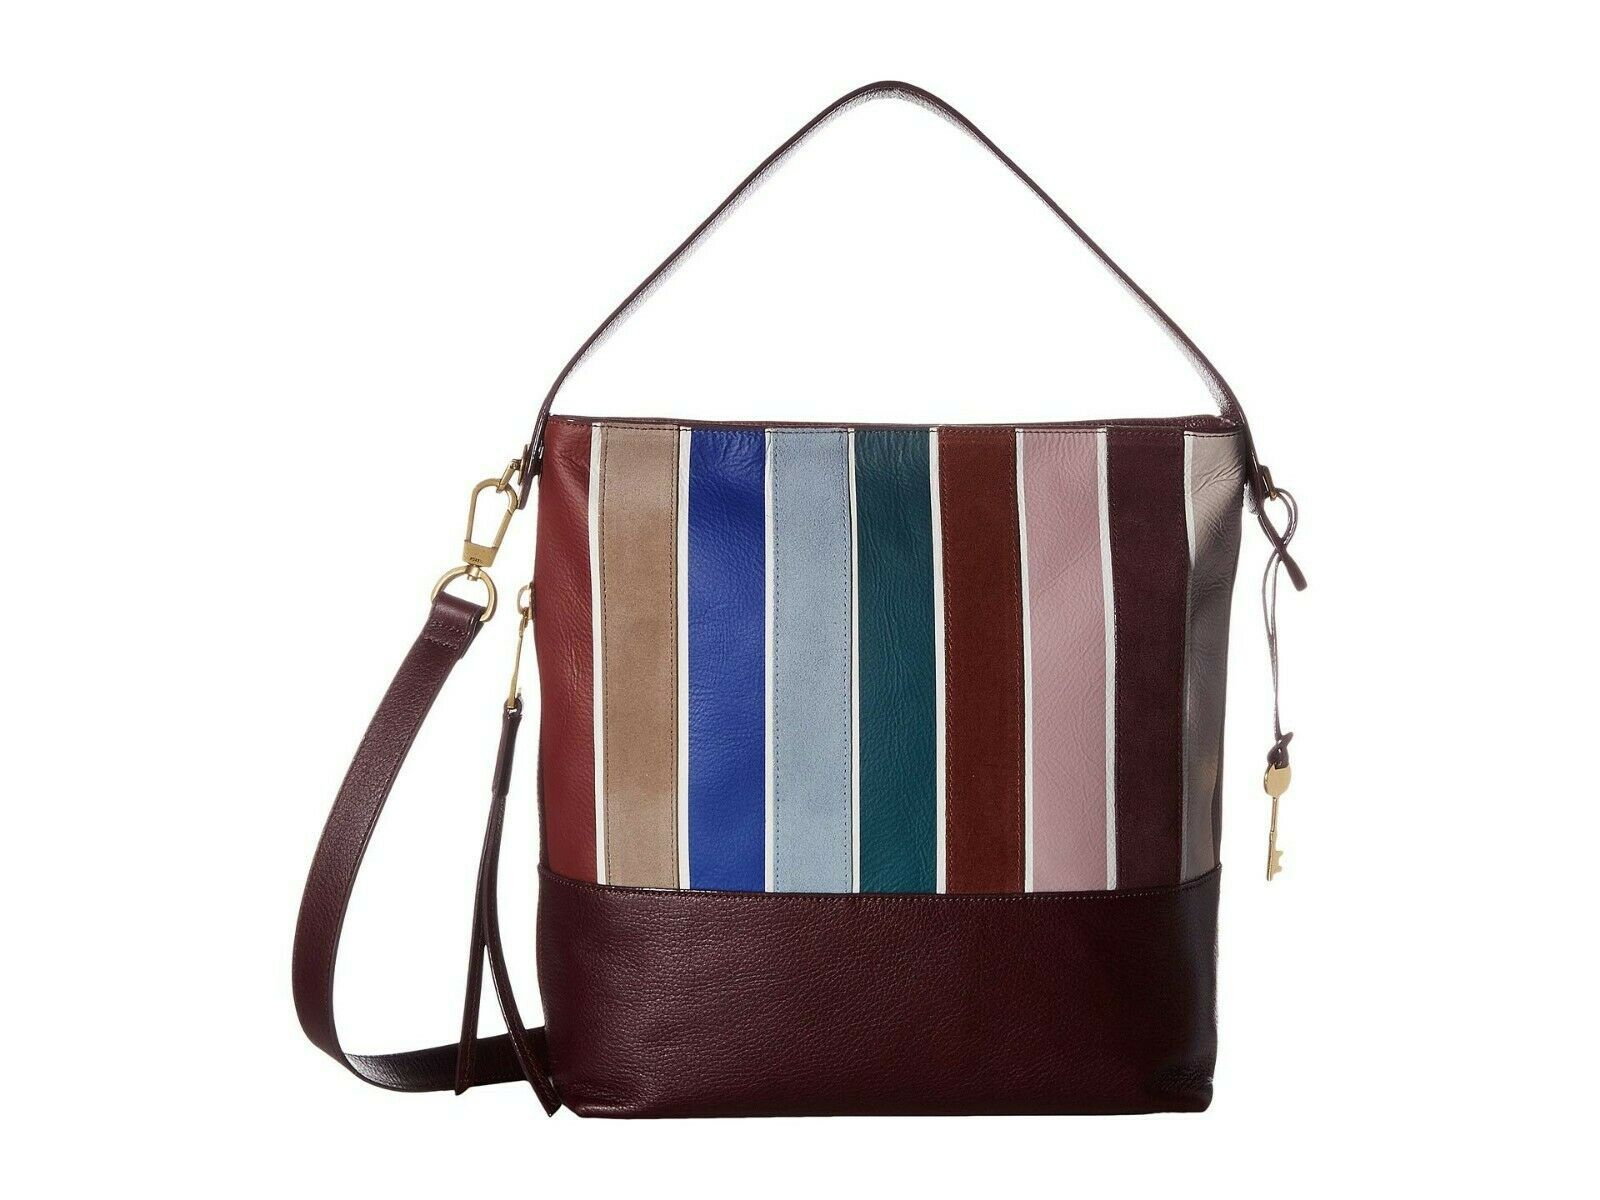 New Fossil Women's Maya Small Leather Hobo Bag Variety Colors image 10